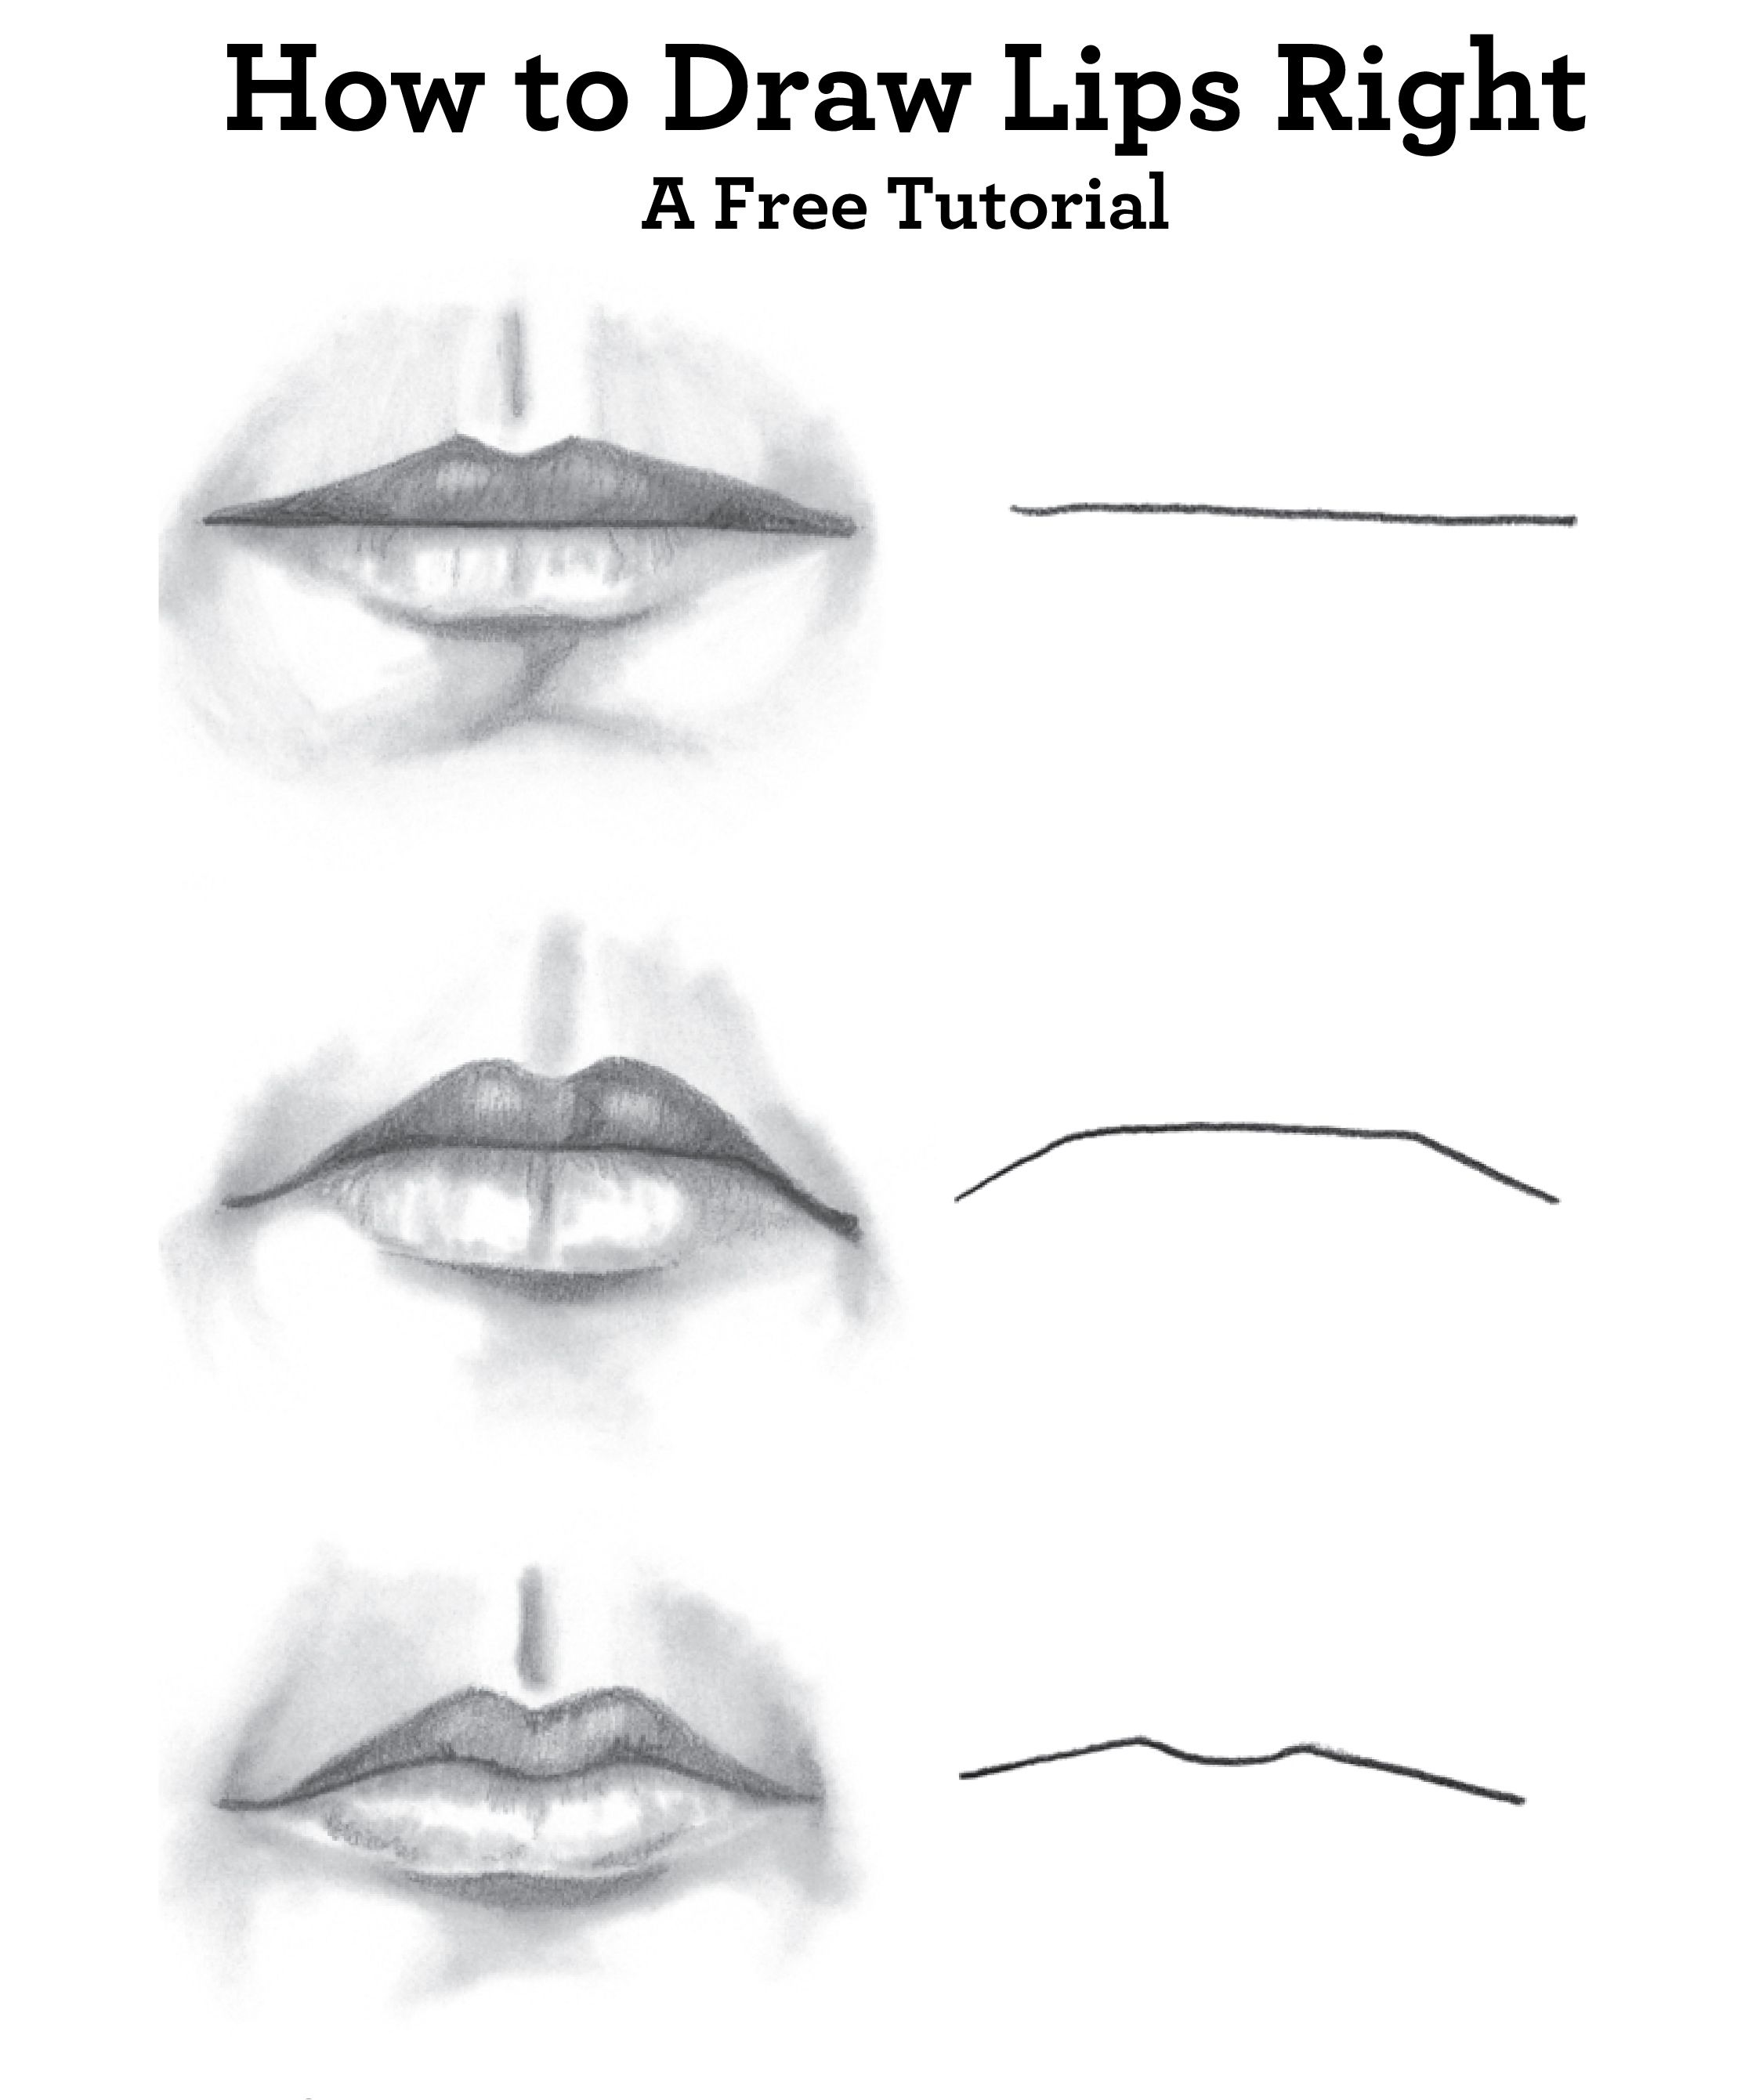 How to draw a face 25 step by step drawings and video tutorials.